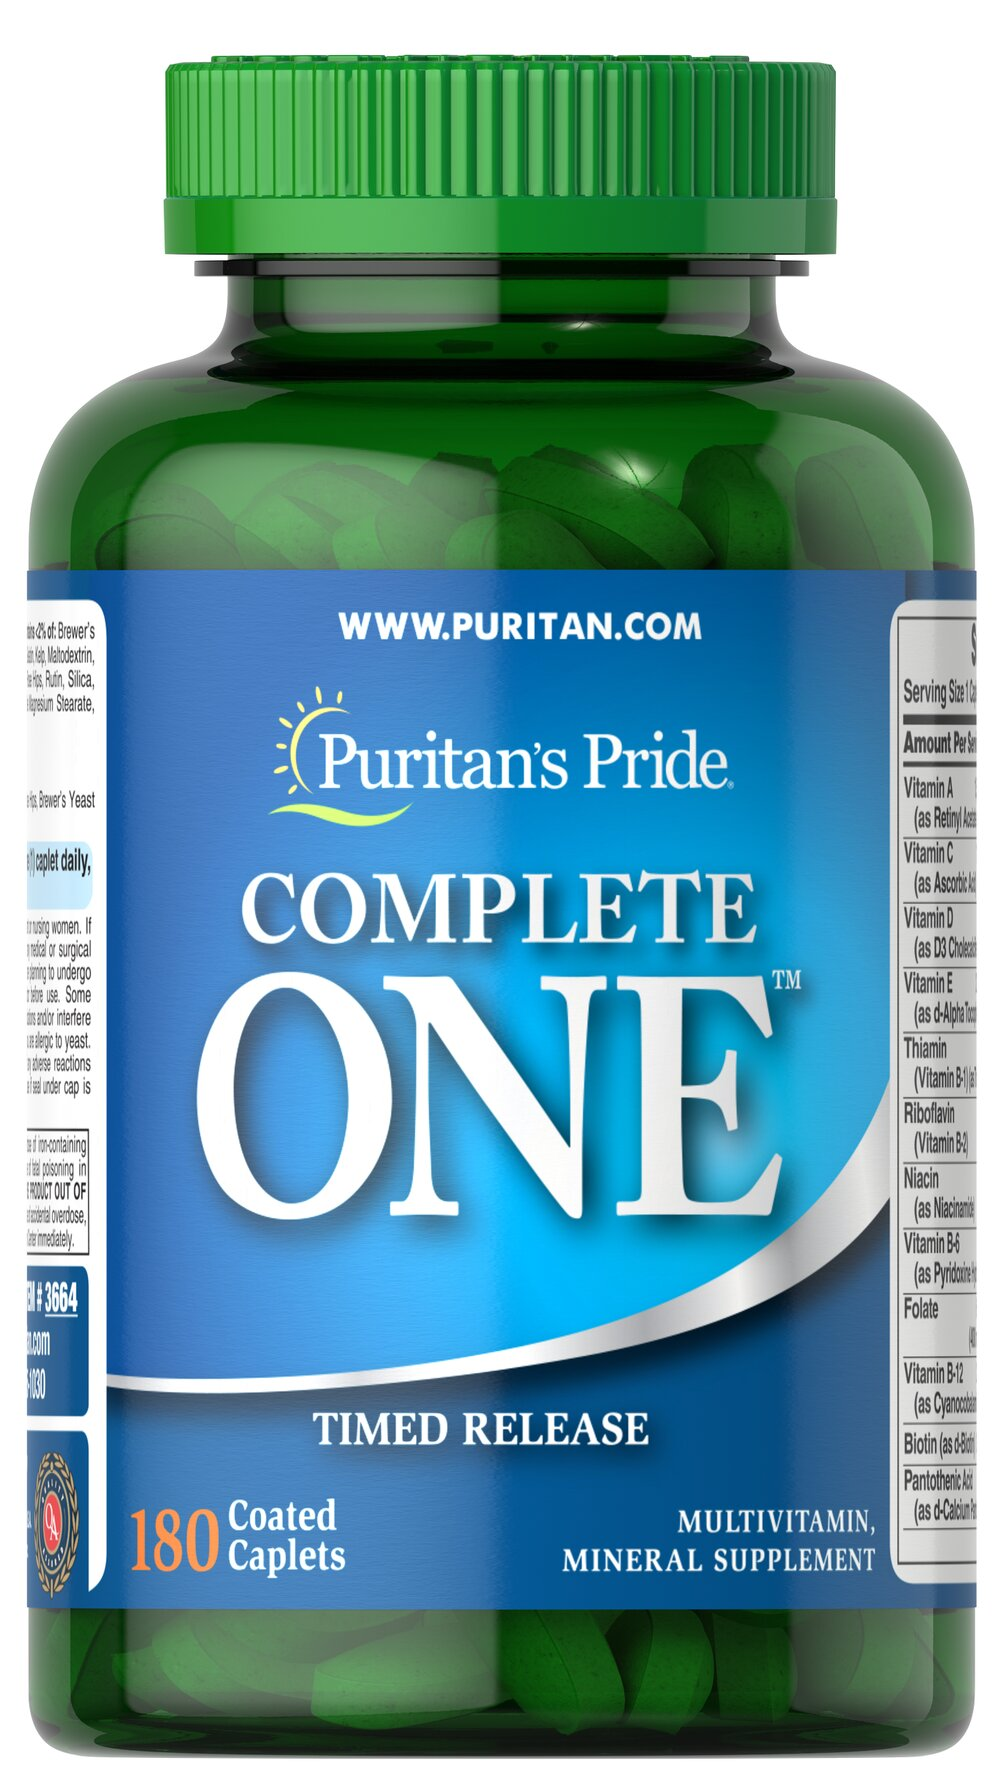 Puritan's Pride One™ Multivitamins Timed Release <p>Special multivitamins formula with beta-carotene. Each easy-to-swallow tablet provides: 28 essential nutrients, long acting B-Complex and C Vitamins, plus 13 Essential Minerals including Chromium, Selenium and Zinc.</p> 180 Caplets  $33.99